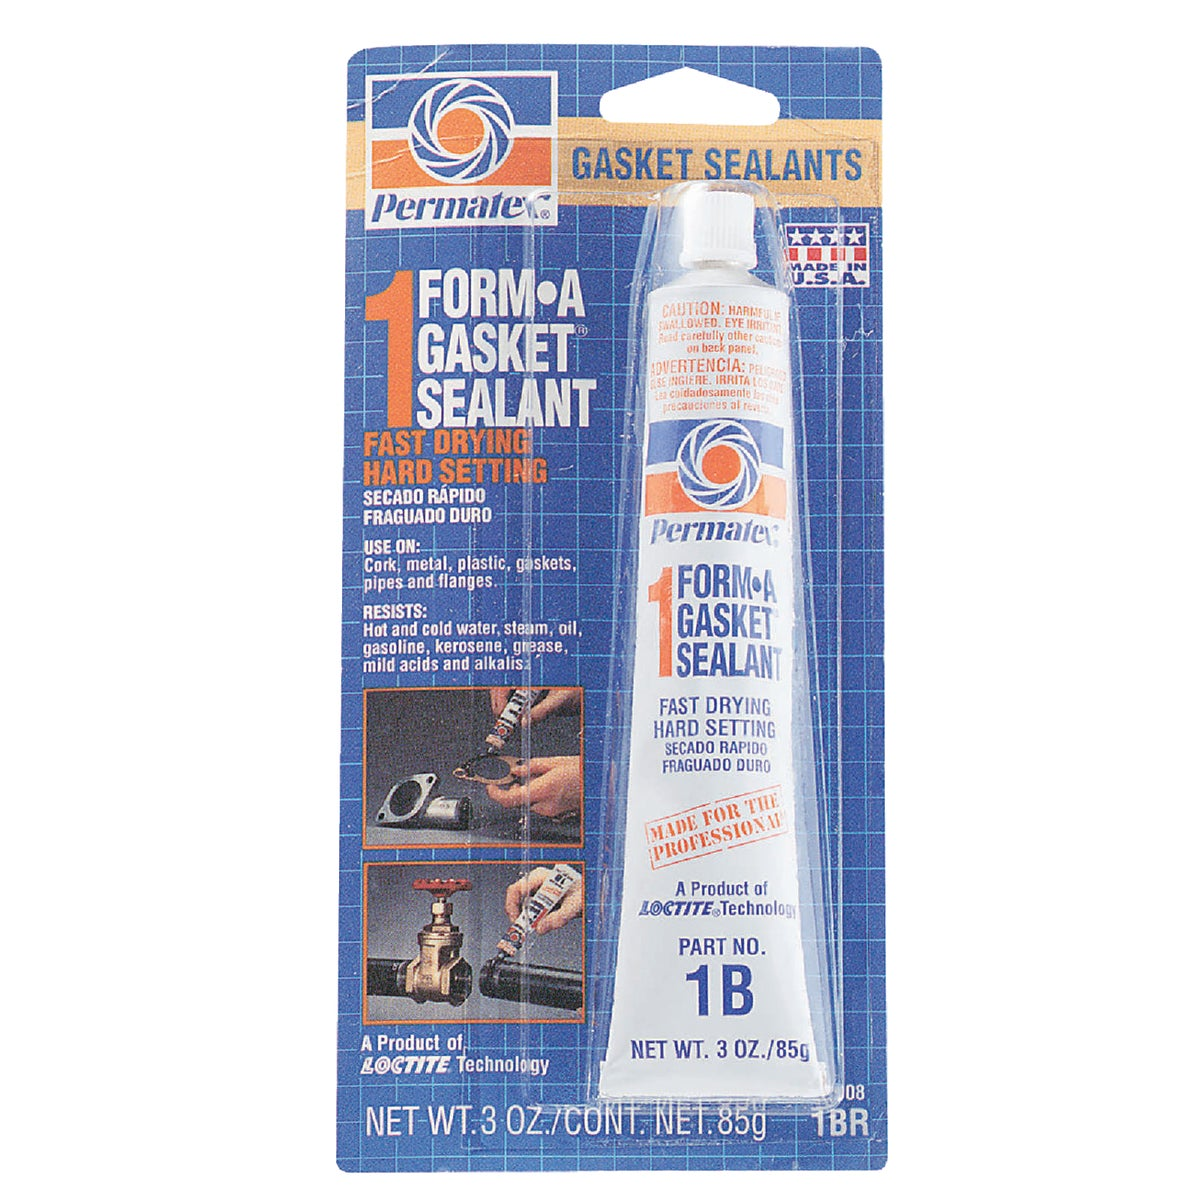 3OZ GASKET SEALANT - 80008 by Itw Global Brands